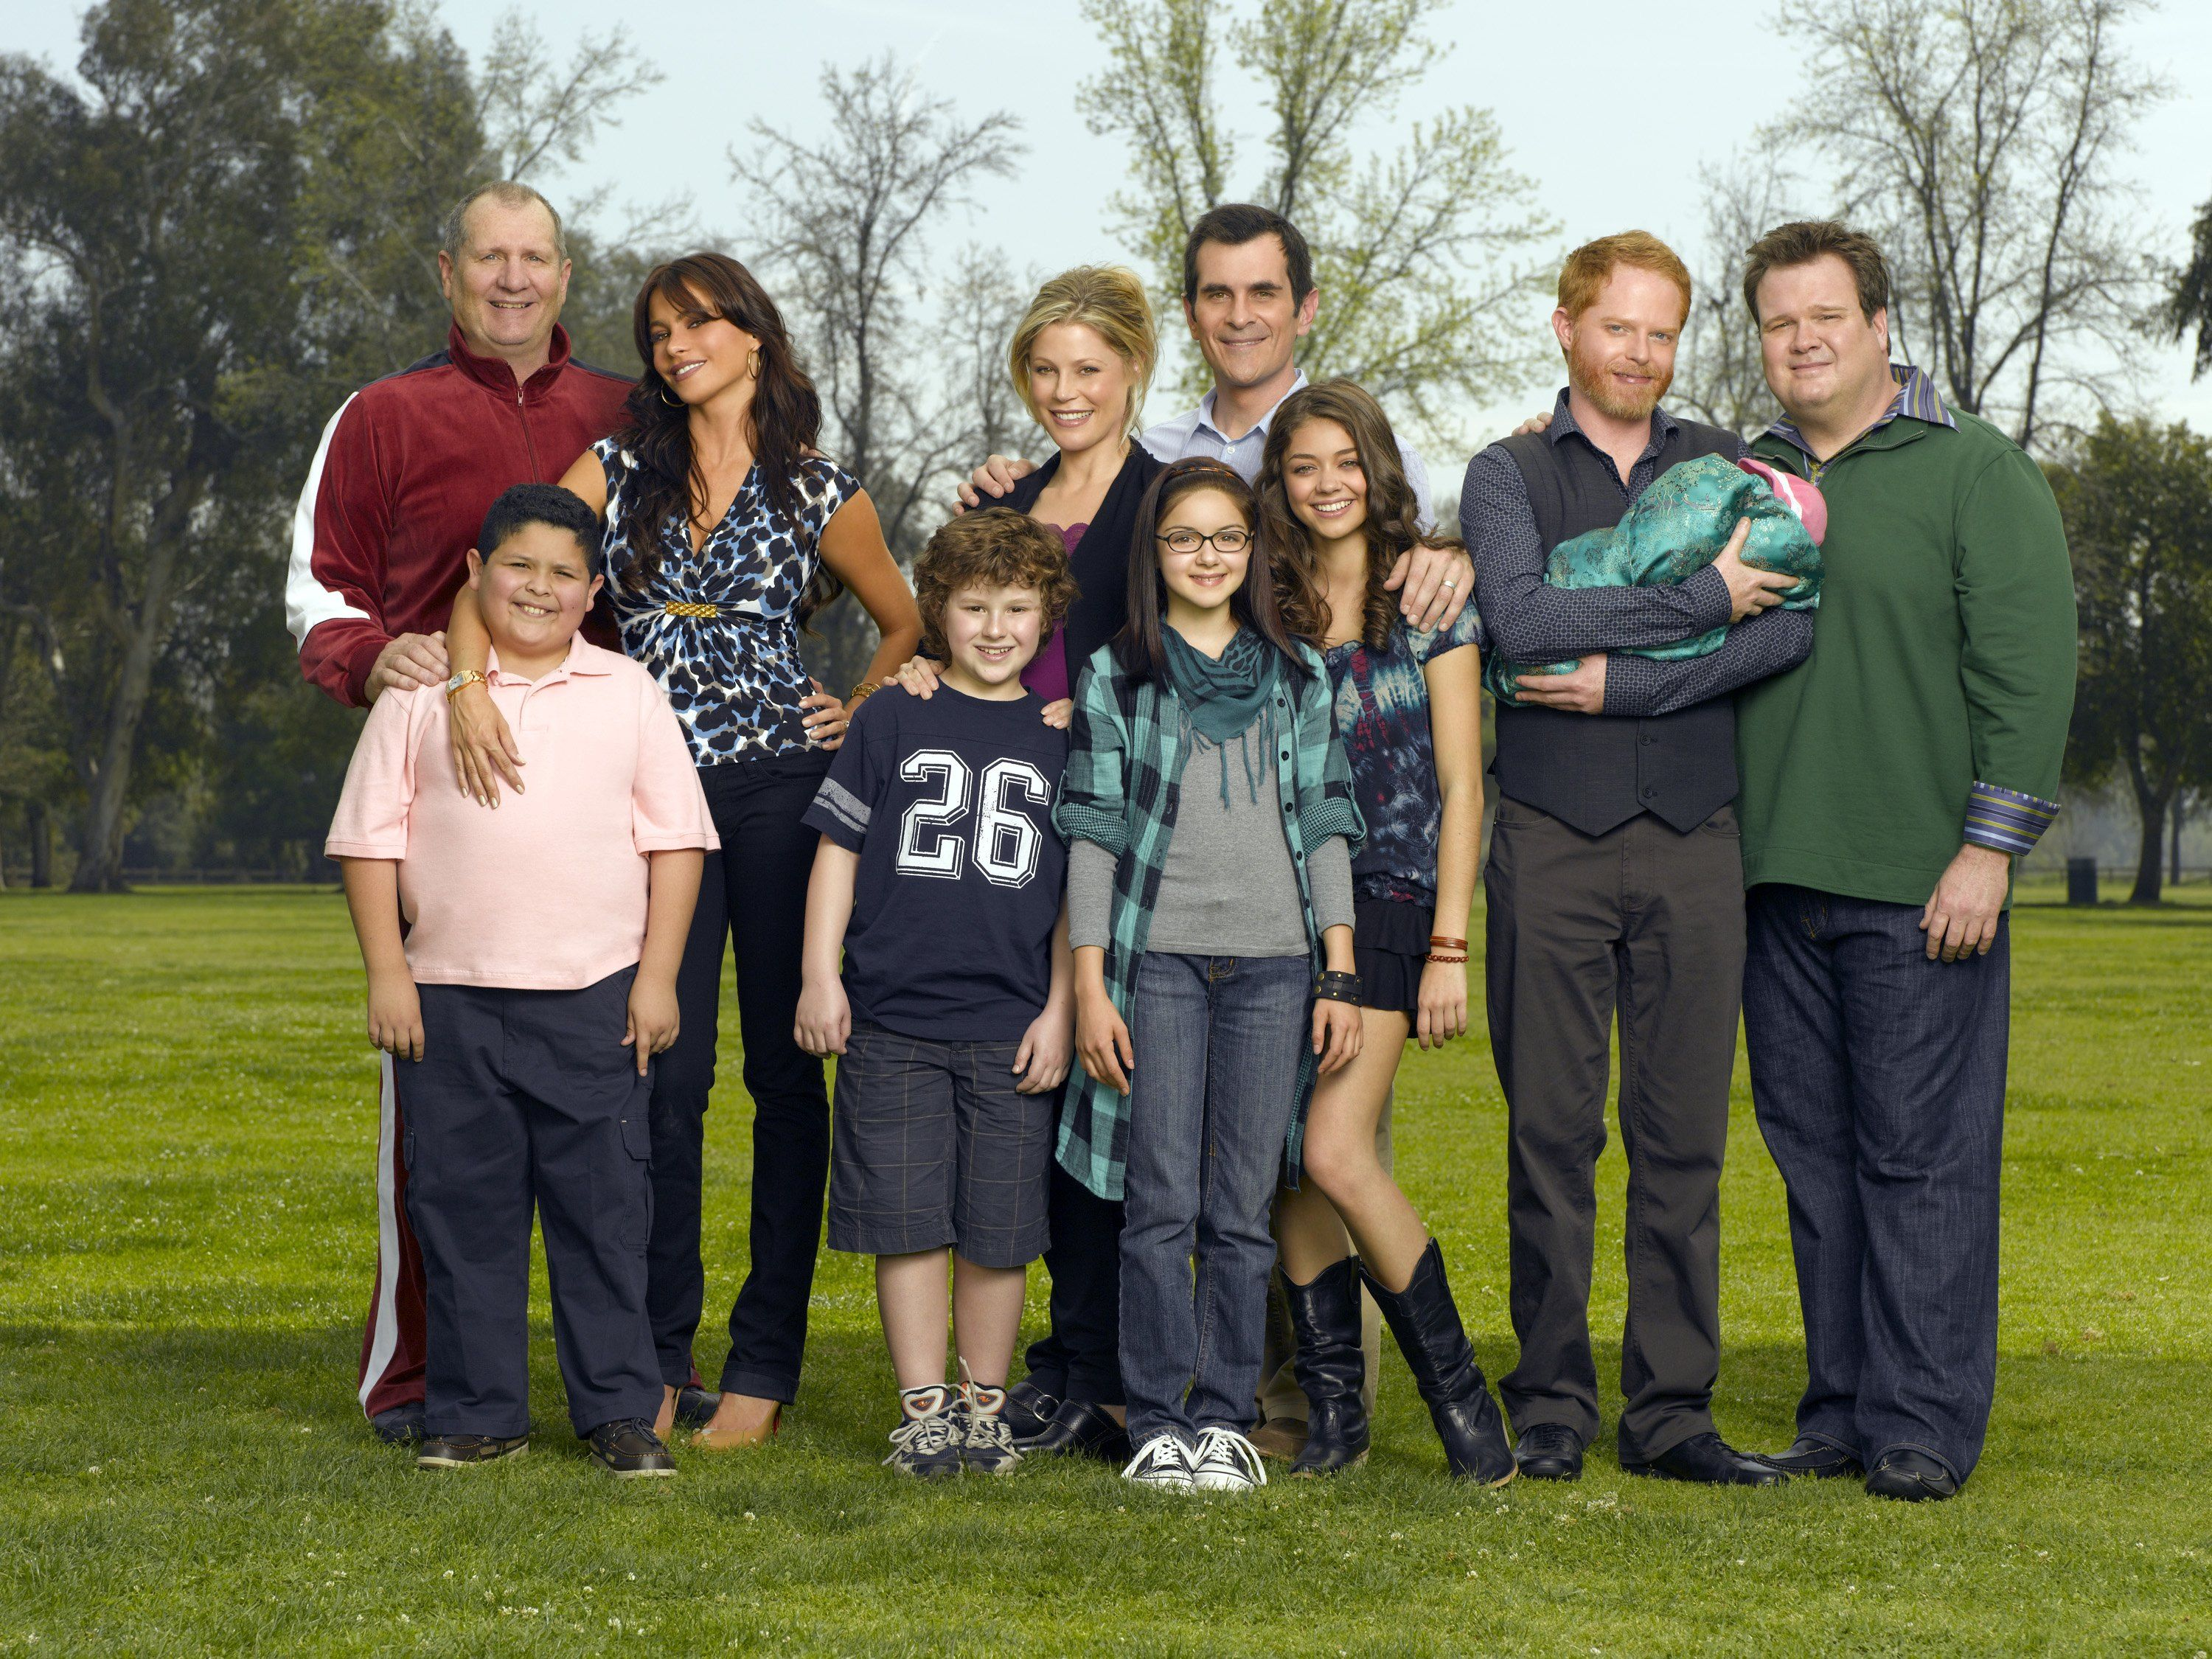 The 'Modern Family' Cast From Season 1 Through to Now